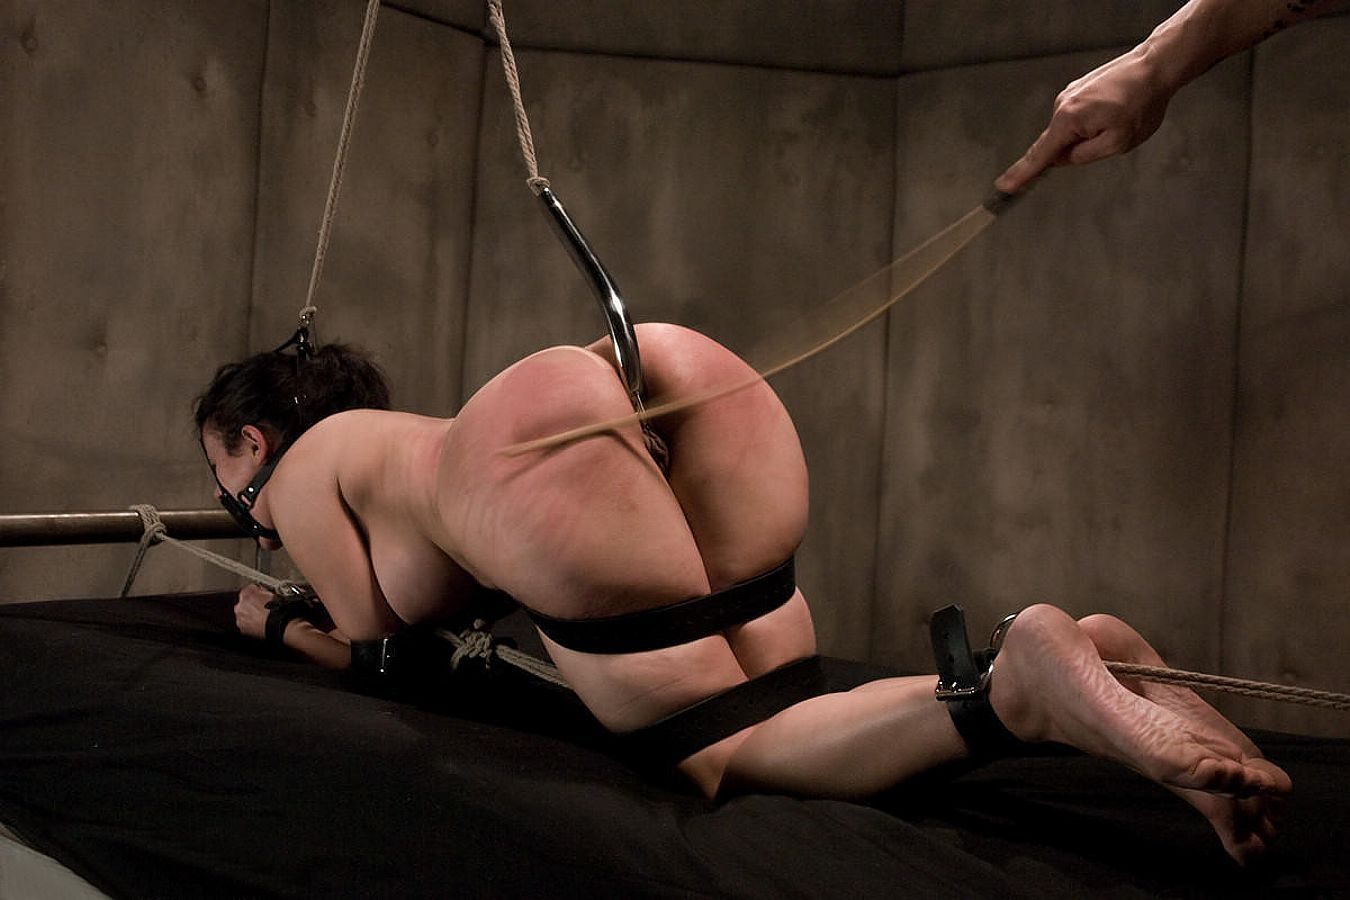 smotret-video-bdsm-besplatno-bez-registratsii